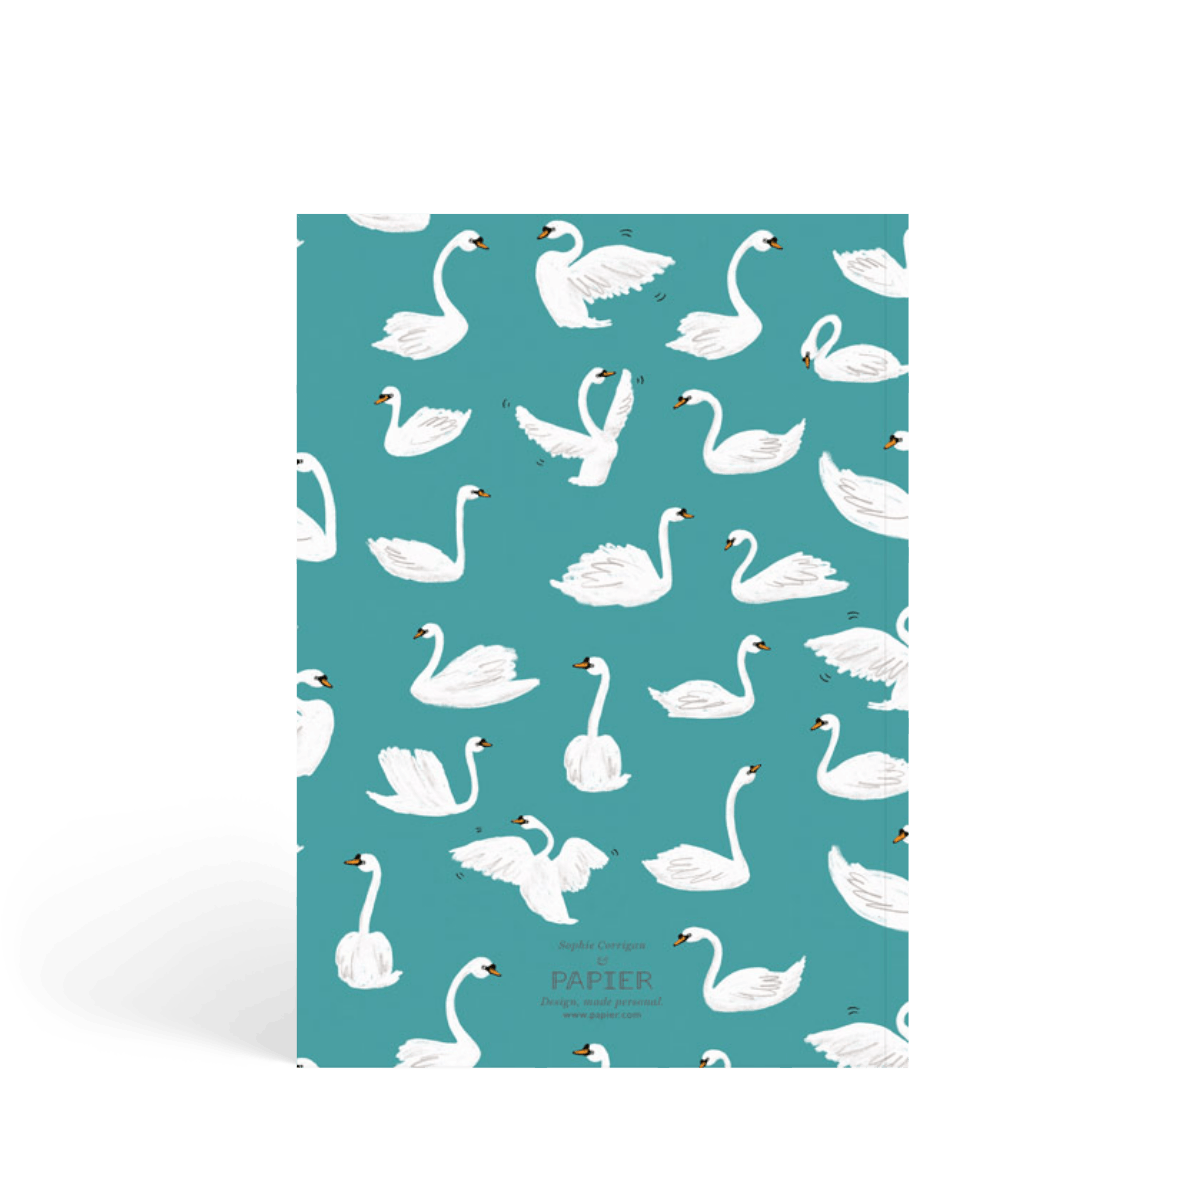 Https%3a%2f%2fwww.papier.com%2fproduct image%2f57147%2f5%2fblue swans 13724 back 1542370457.png?ixlib=rb 1.1